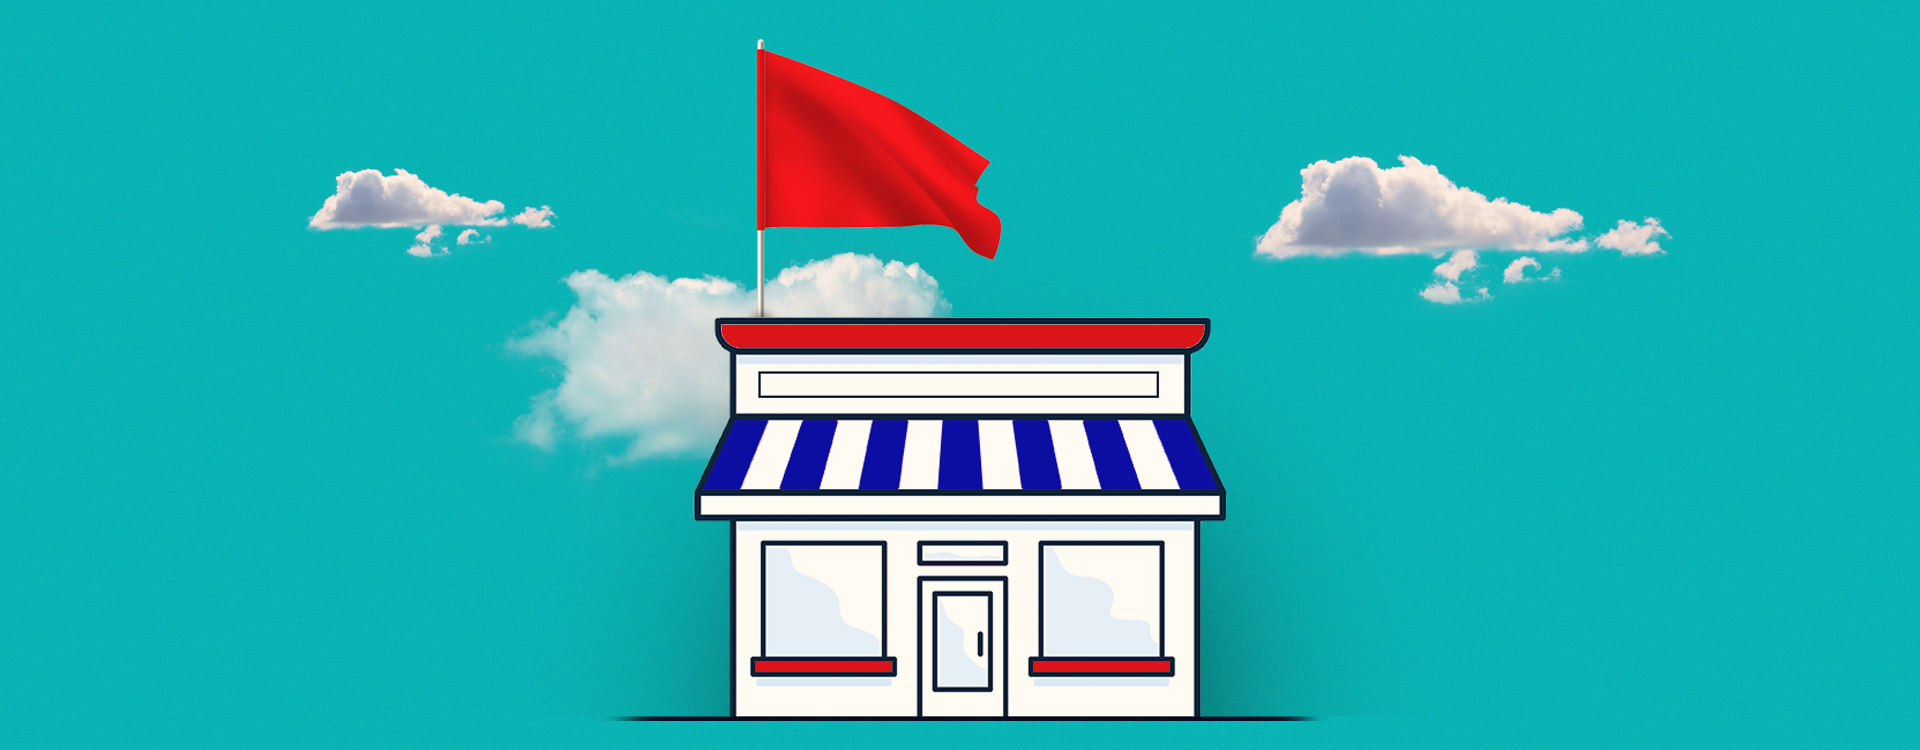 Small businesses should identify red flags before closing.